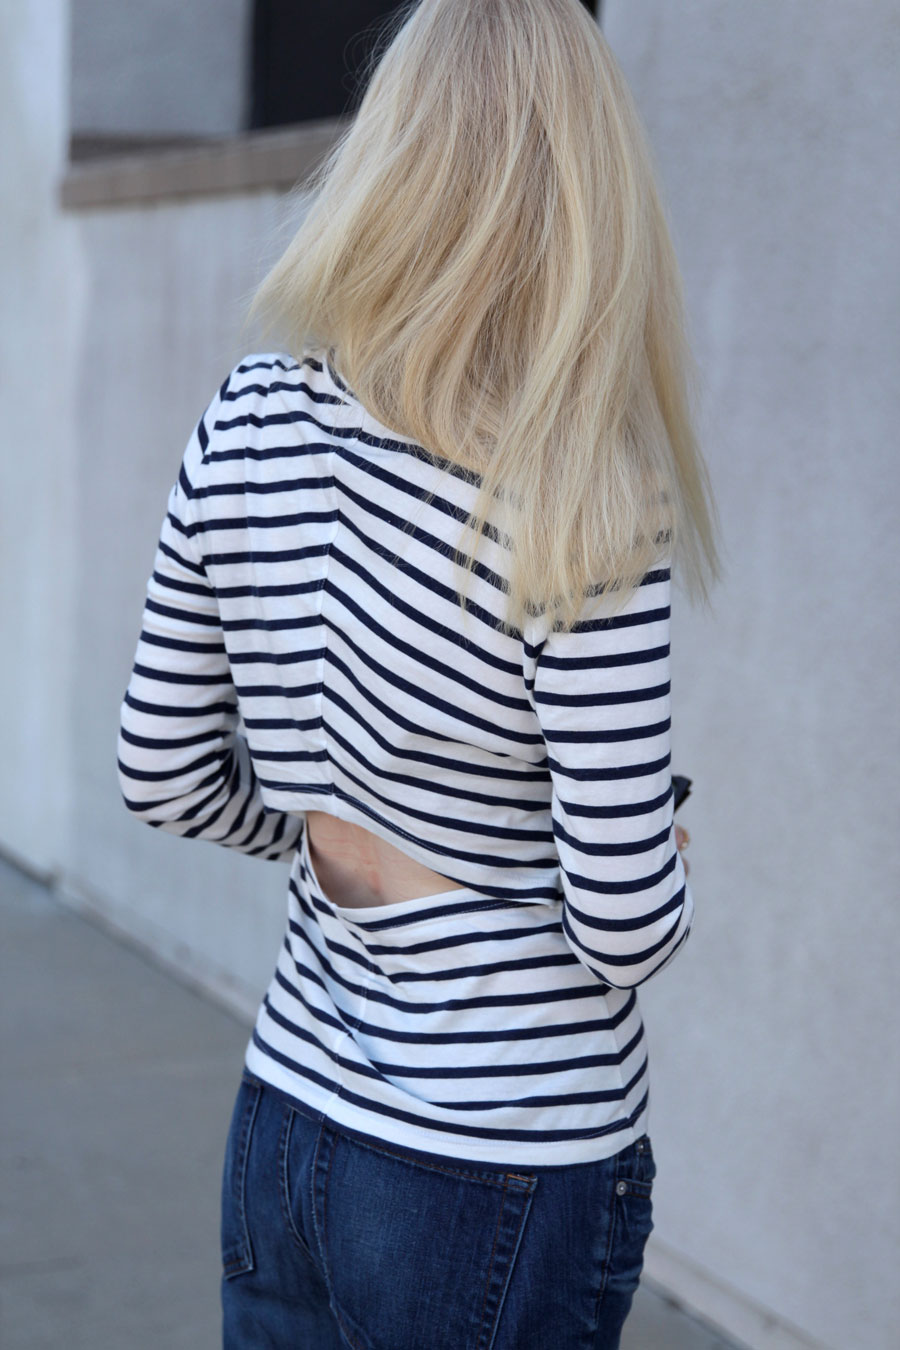 currently crushing, j crew matchstick denim, intermix striped tee